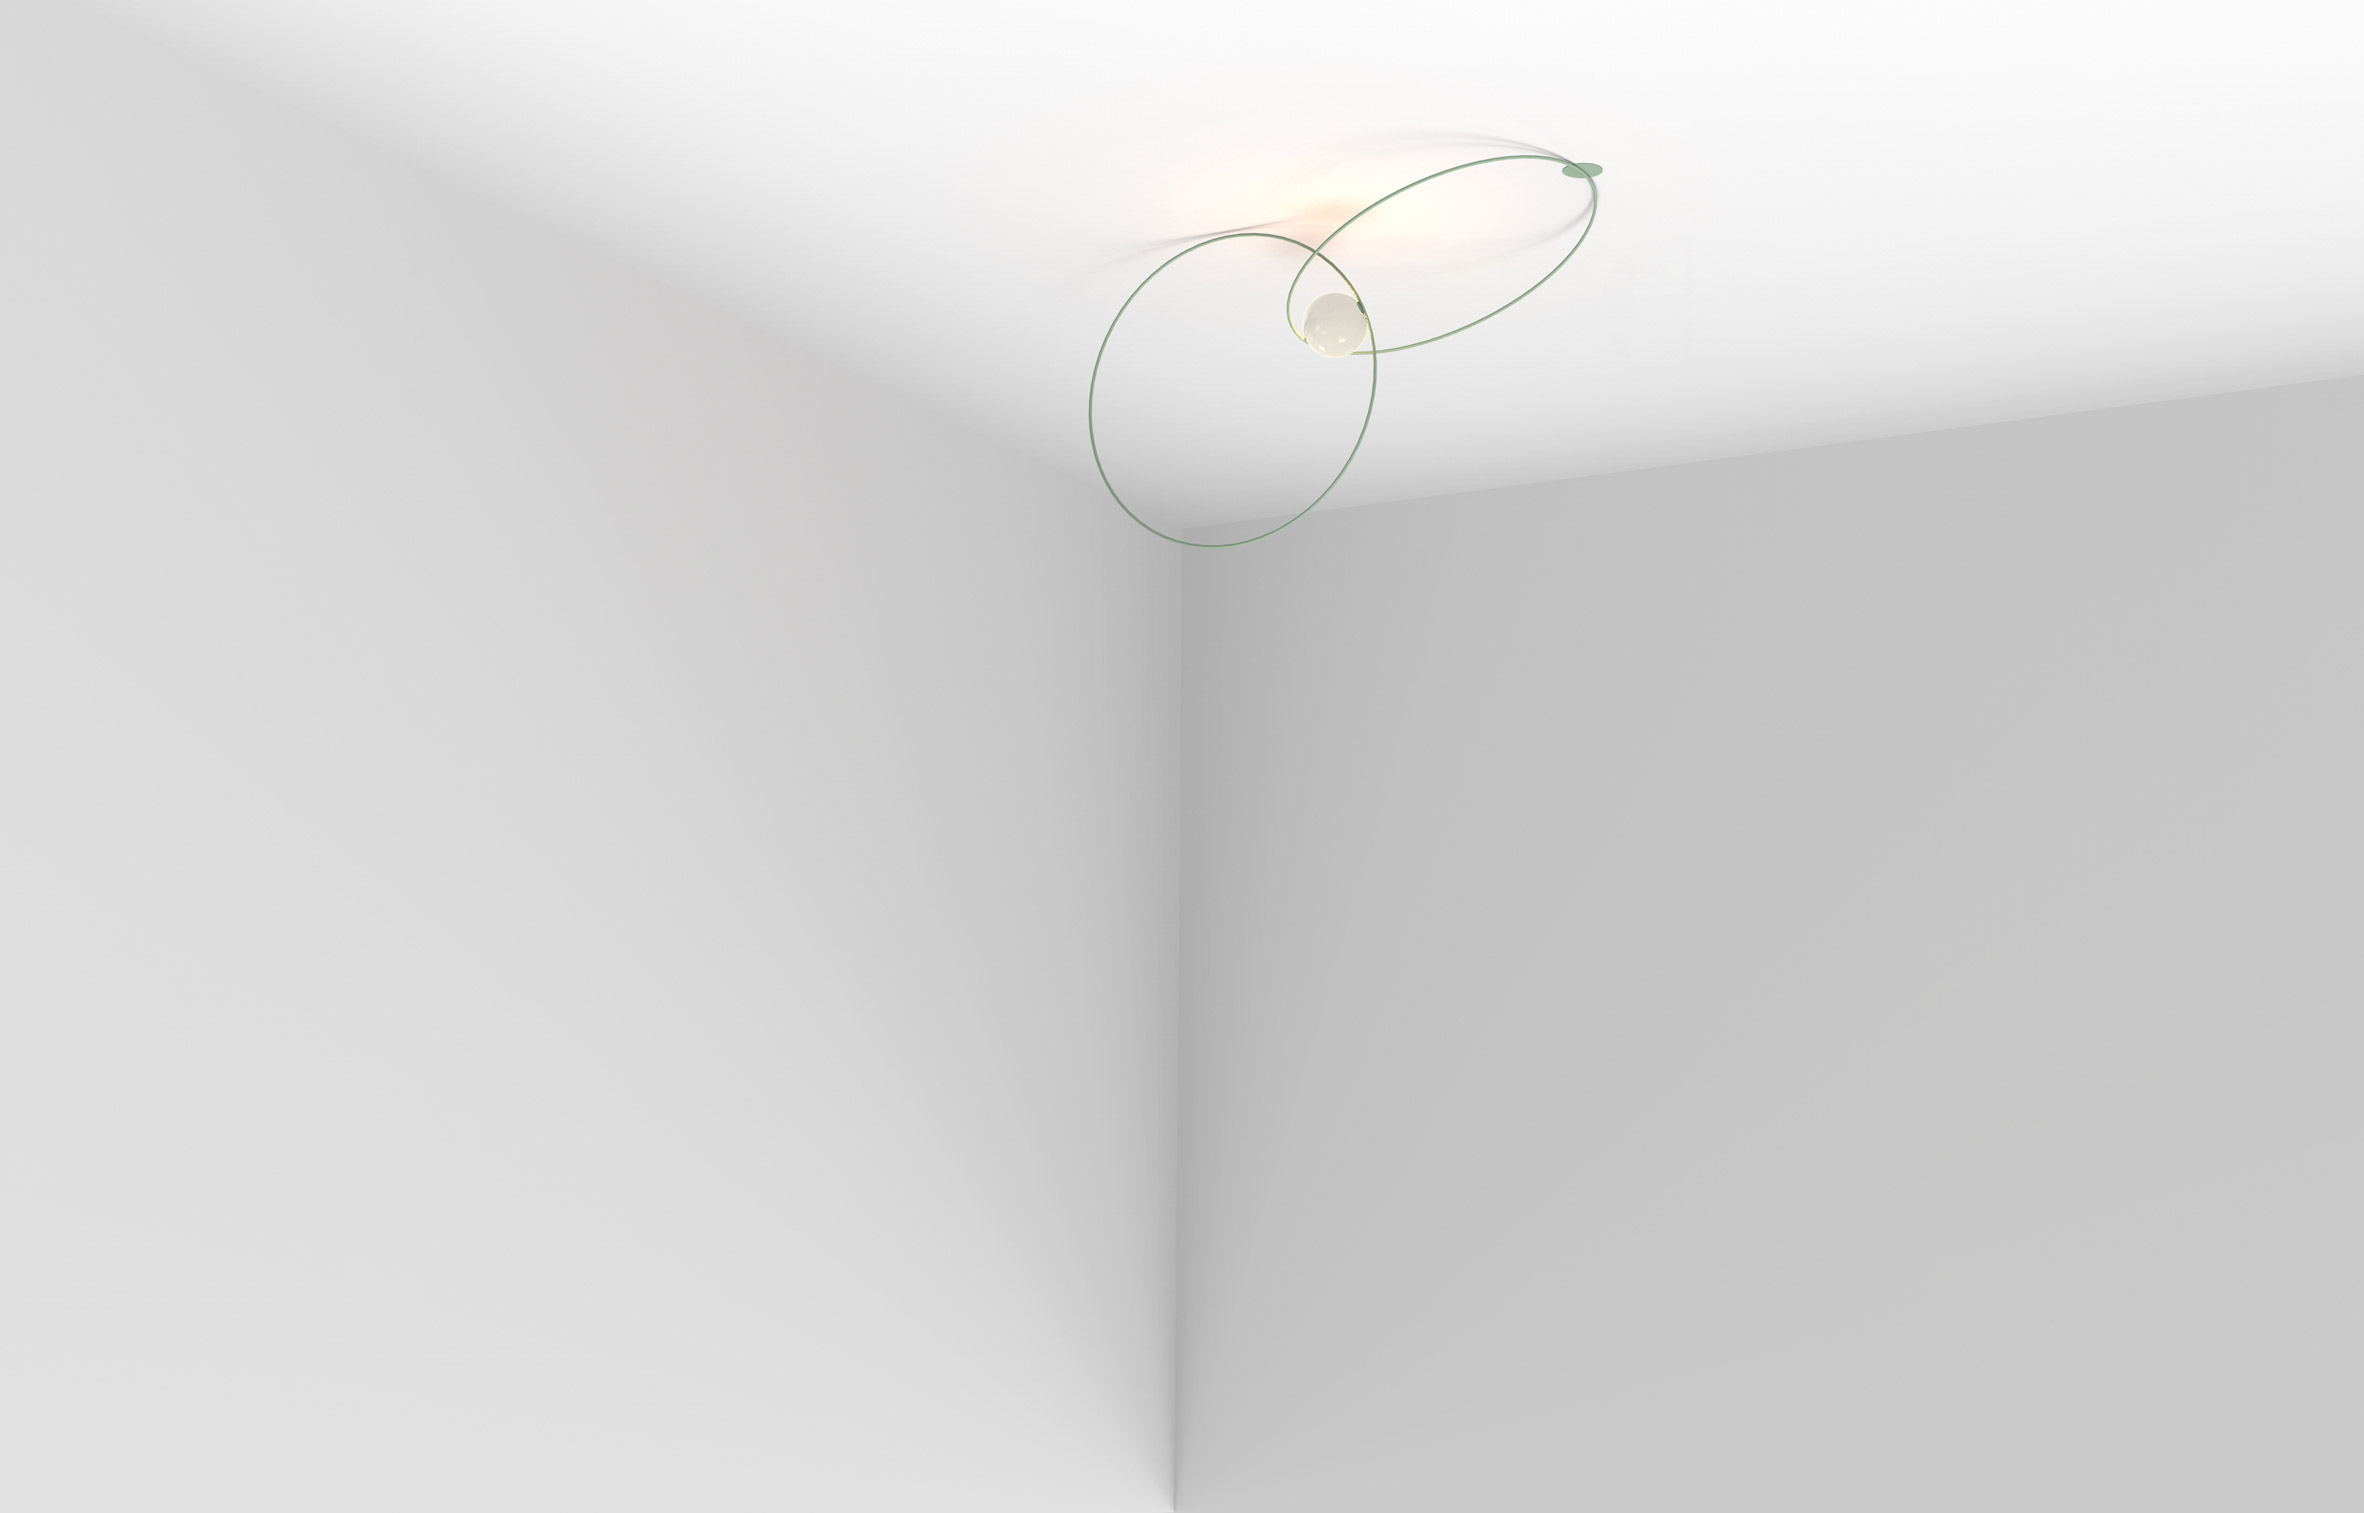 bespoke-loop-collection-by-michael-anastassiades-at-future-perfect-miami-design-lighting-_dezeen_2364_col_7